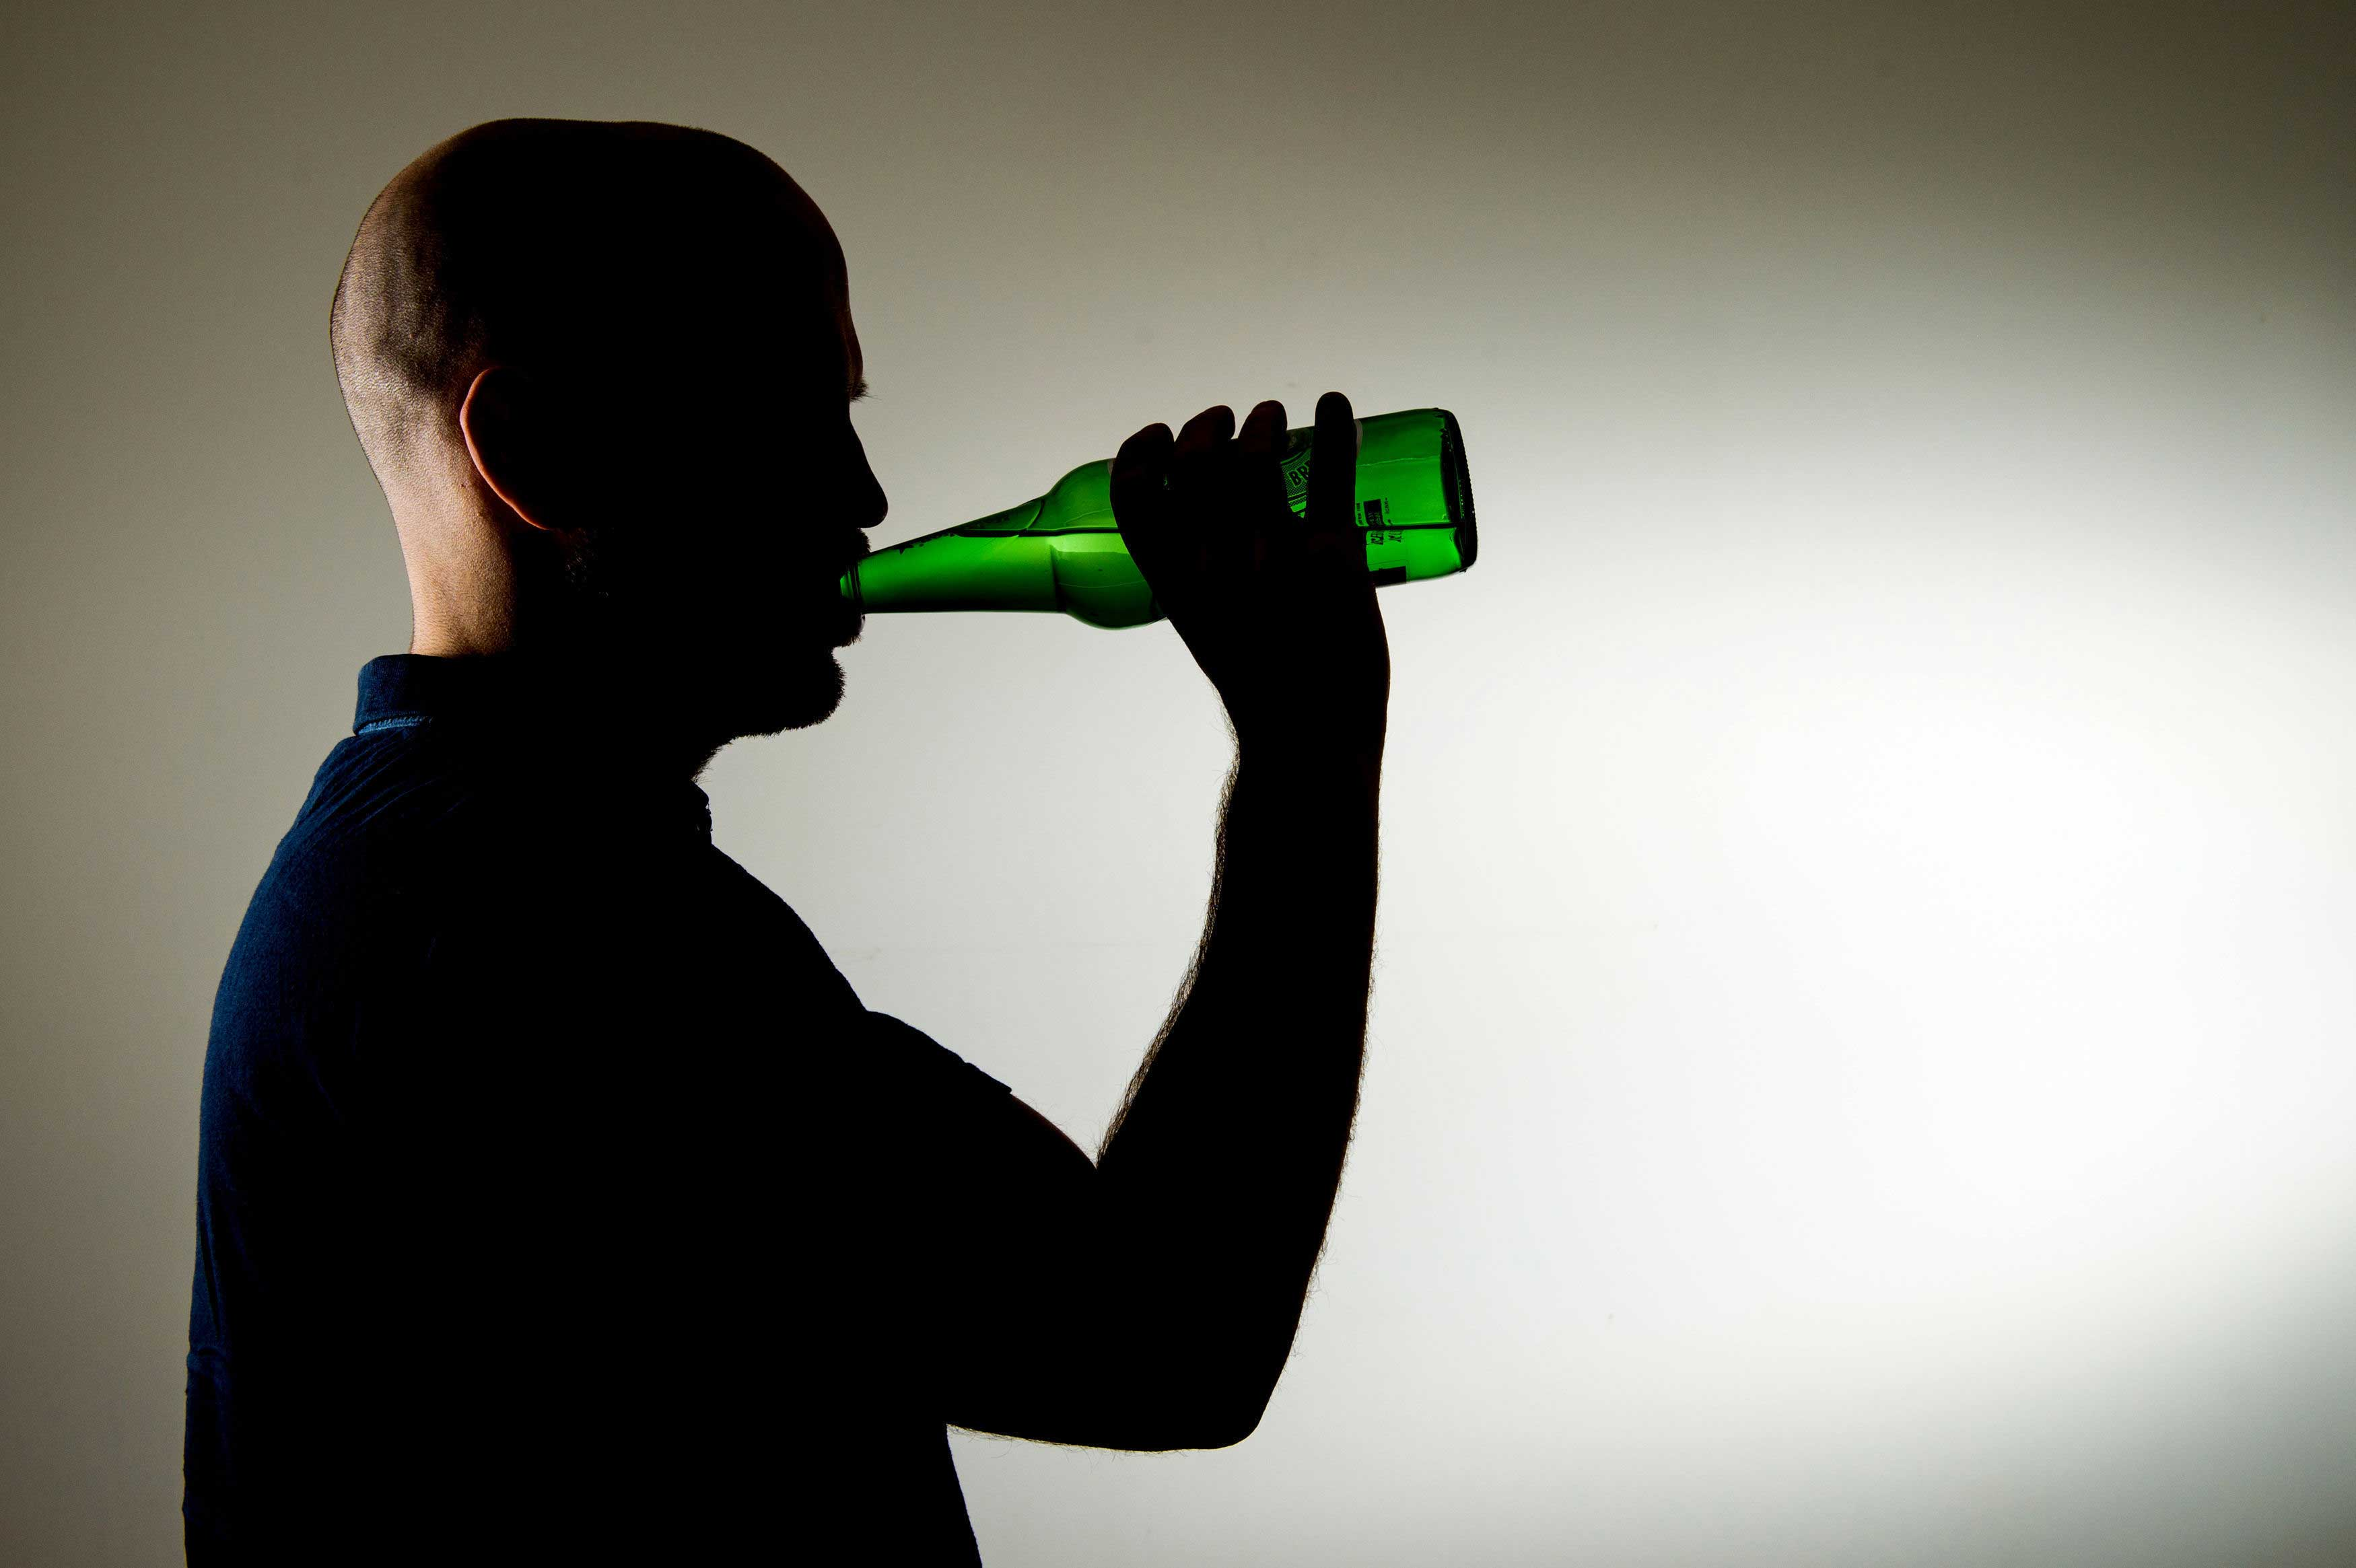 Drinks a Week? US Alcohol Guidelines Should Be Lowered, Study Says